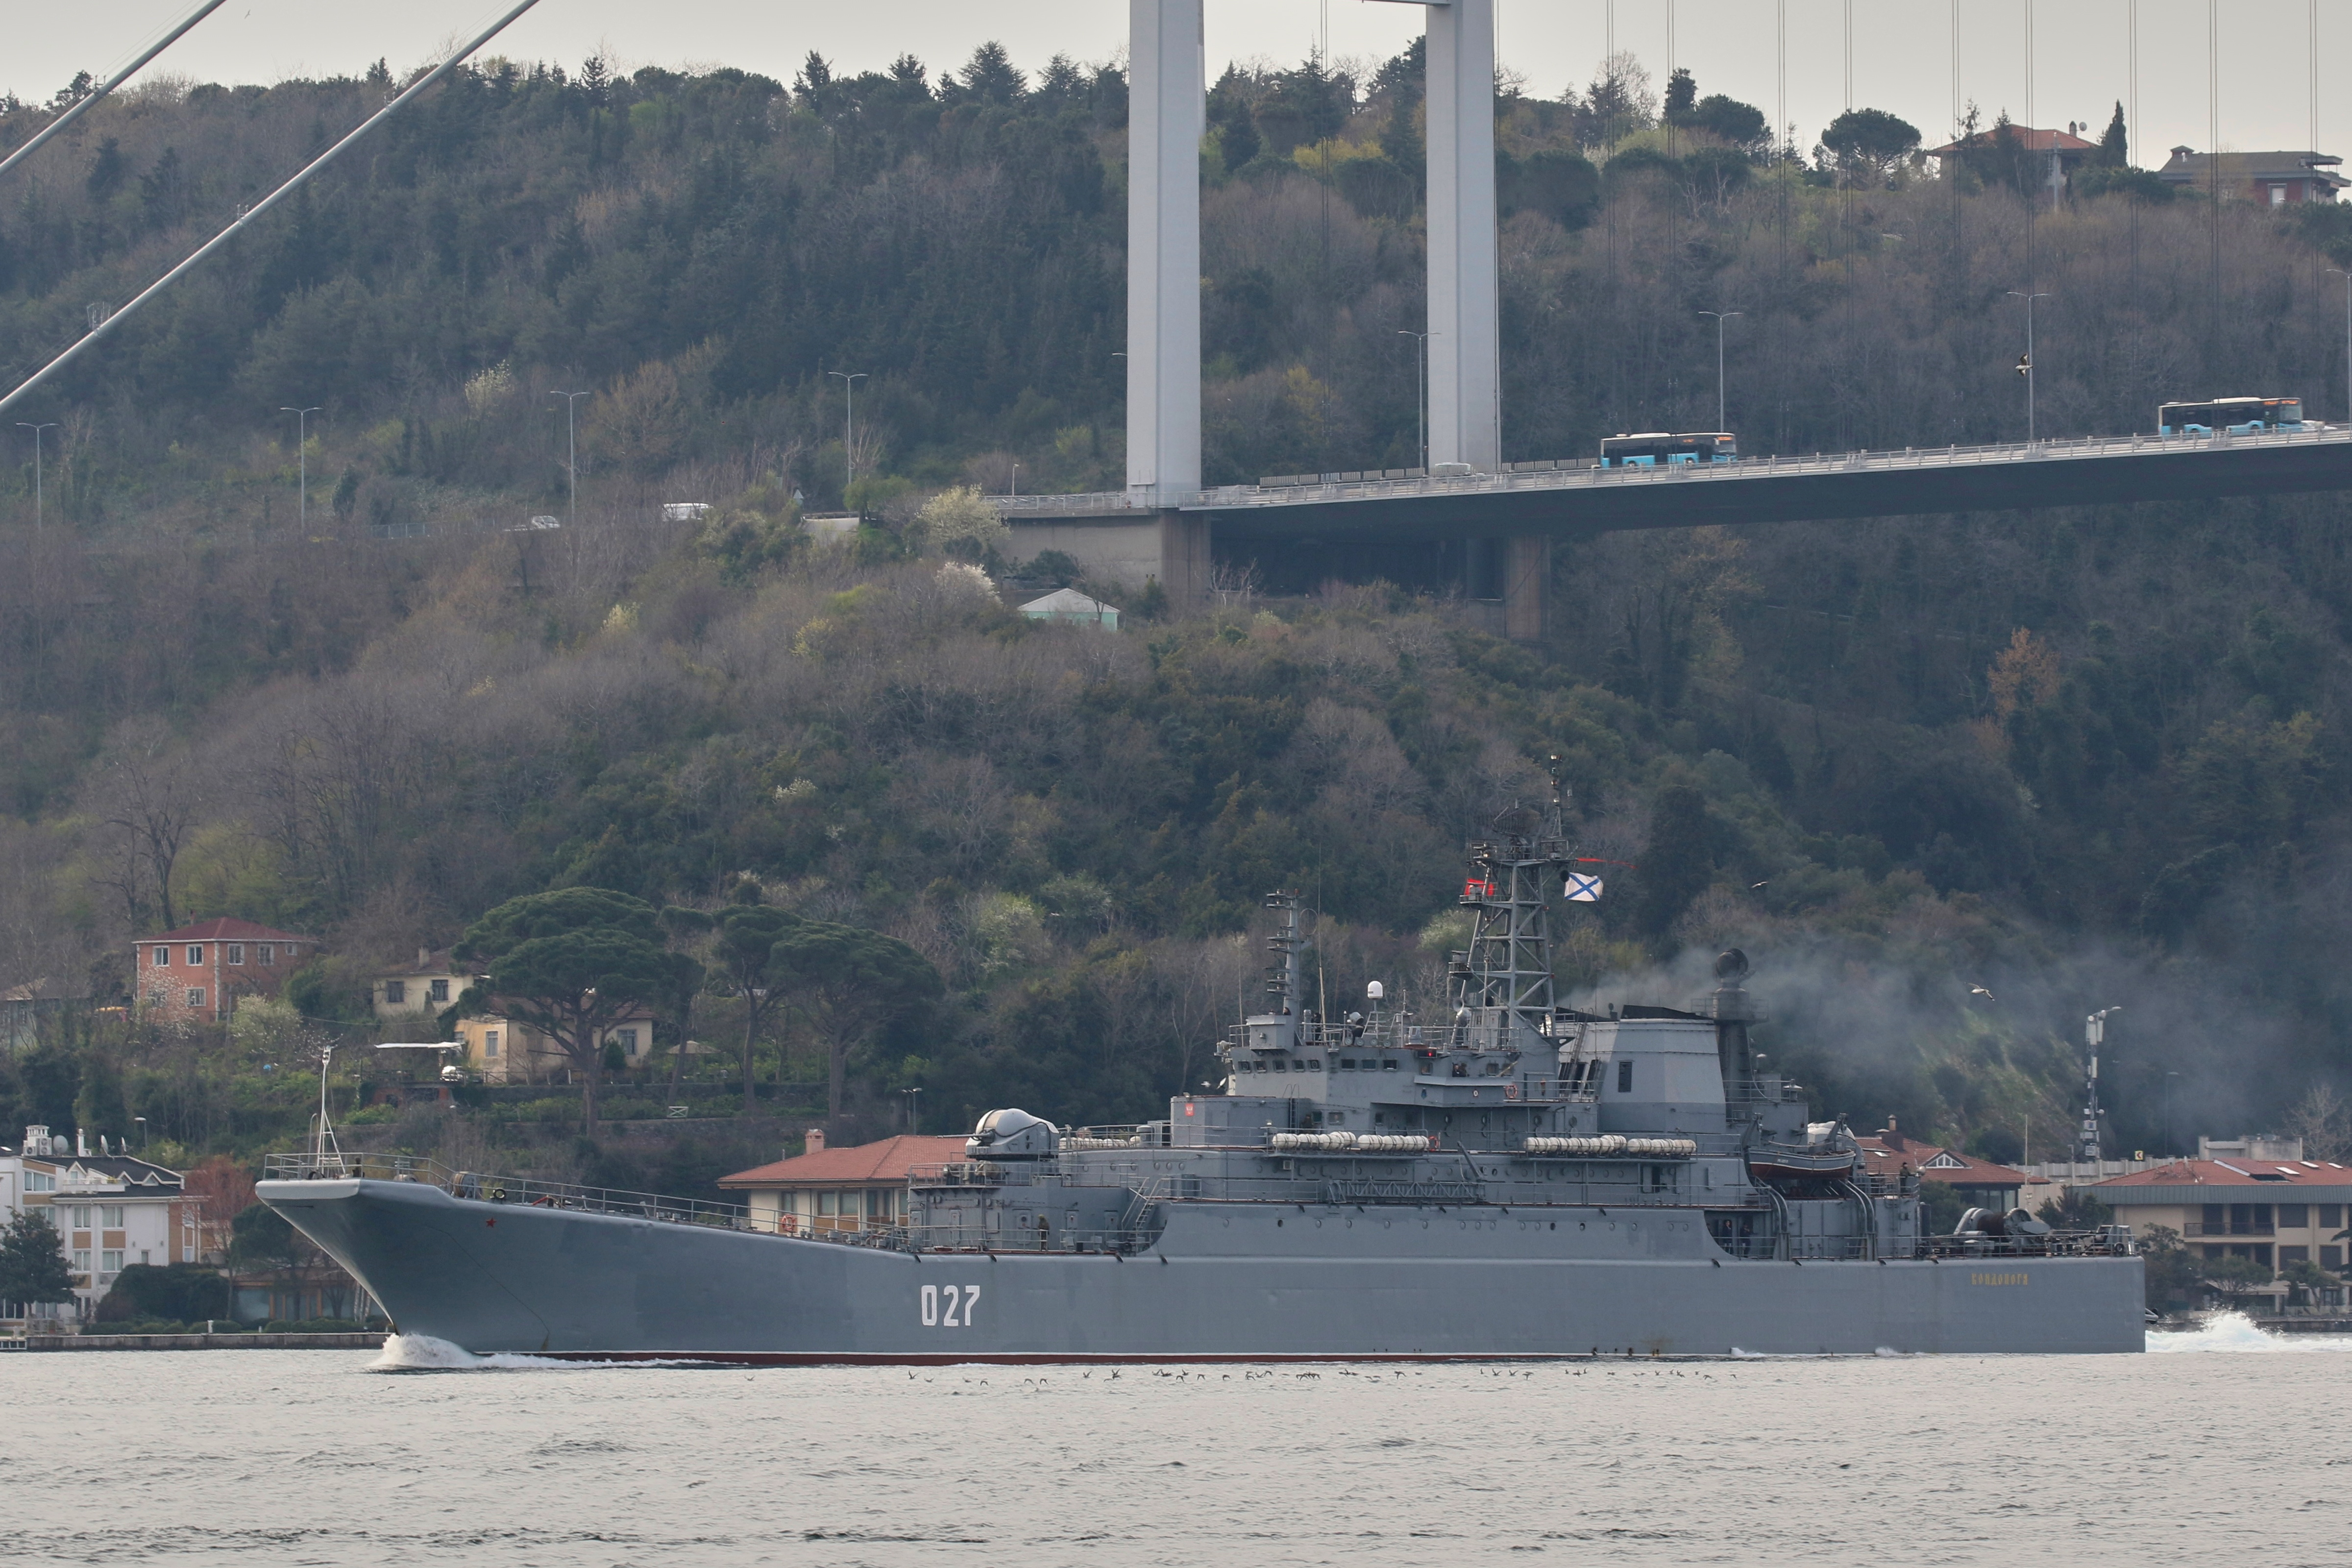 The Russian Navy's Ropucha-class landing ship Kondopoga passes through the Bosphorus on its way to the Black Sea, in Istanbul, Turkey April 17, 2021. REUTERS/Yoruk Isik